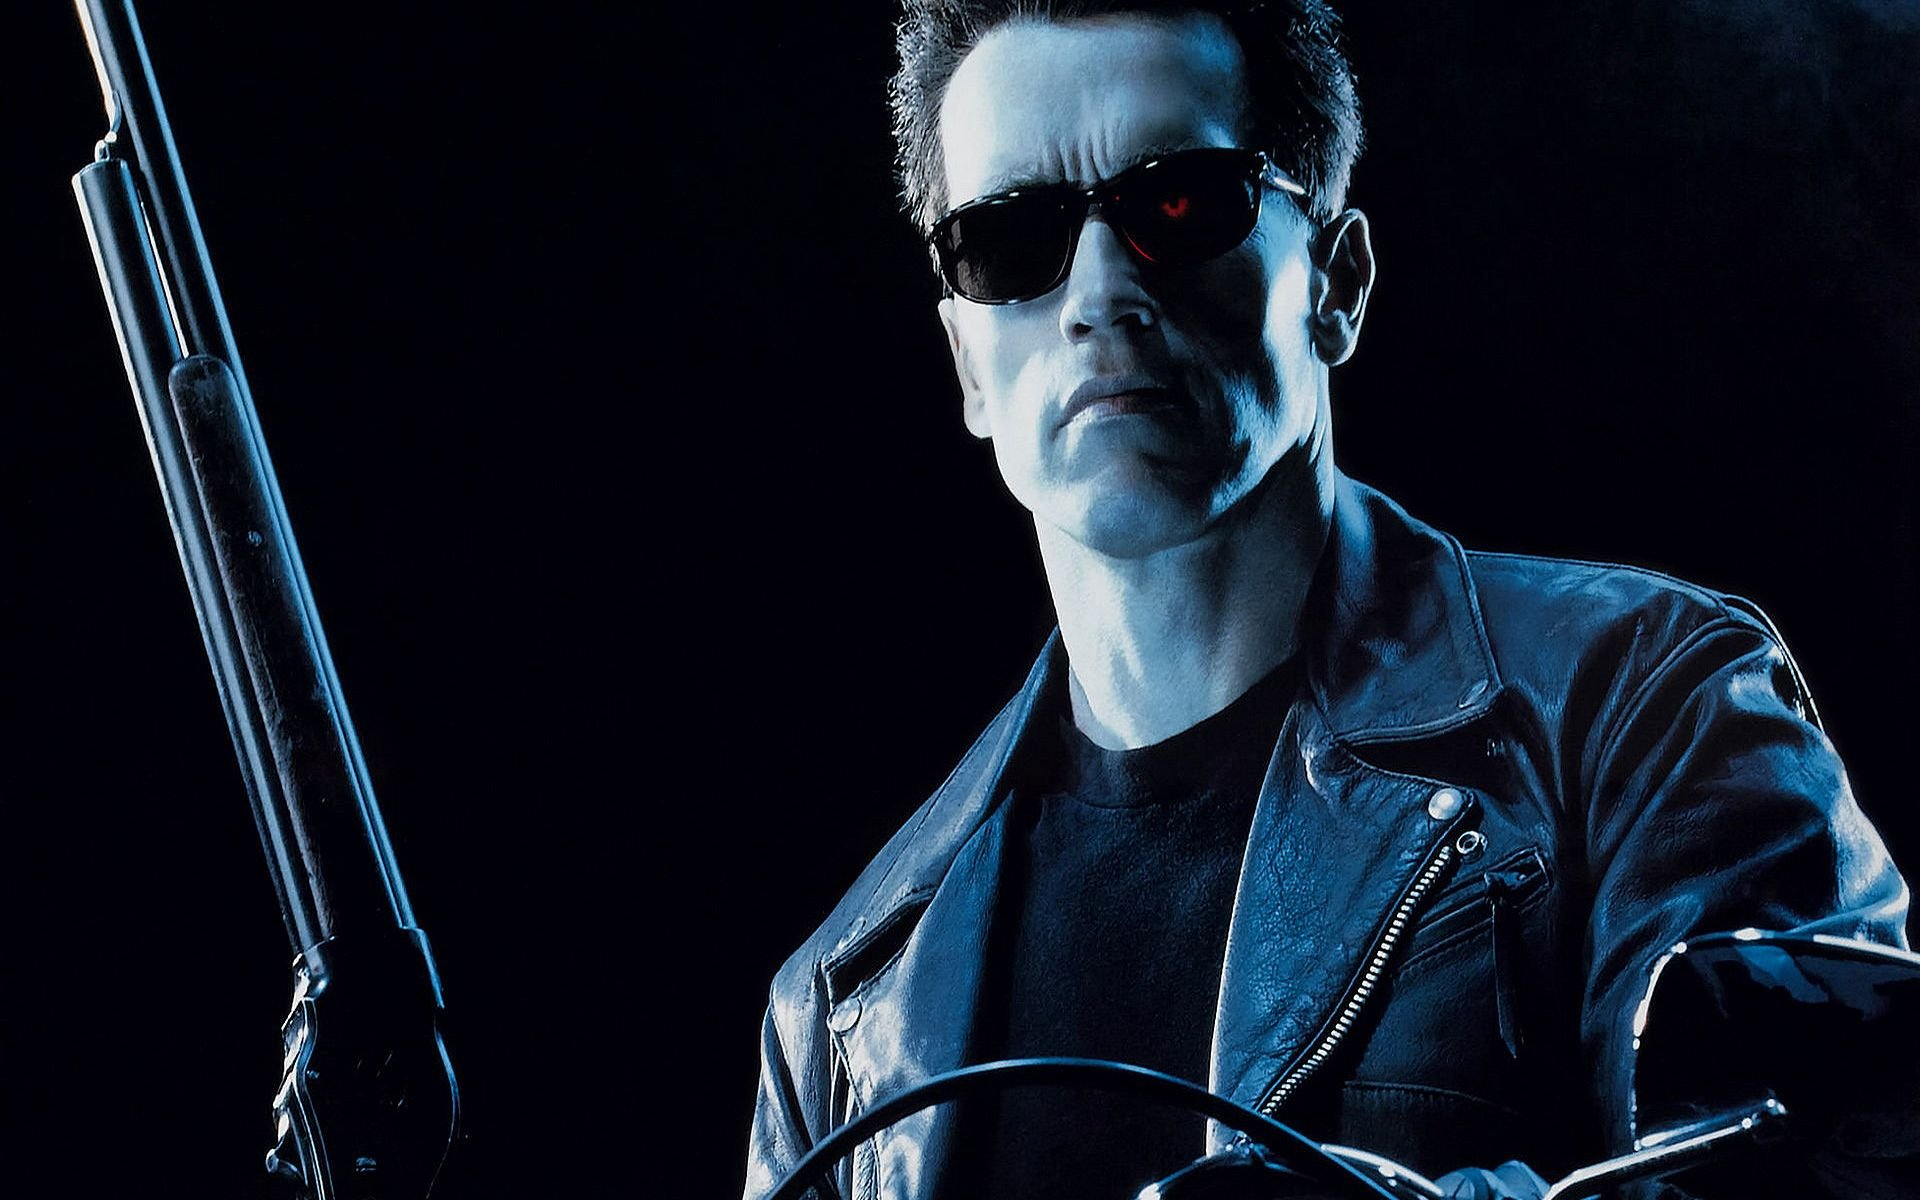 Image The Terminator Terminator 2 Judgment Day Movies 1920x1200